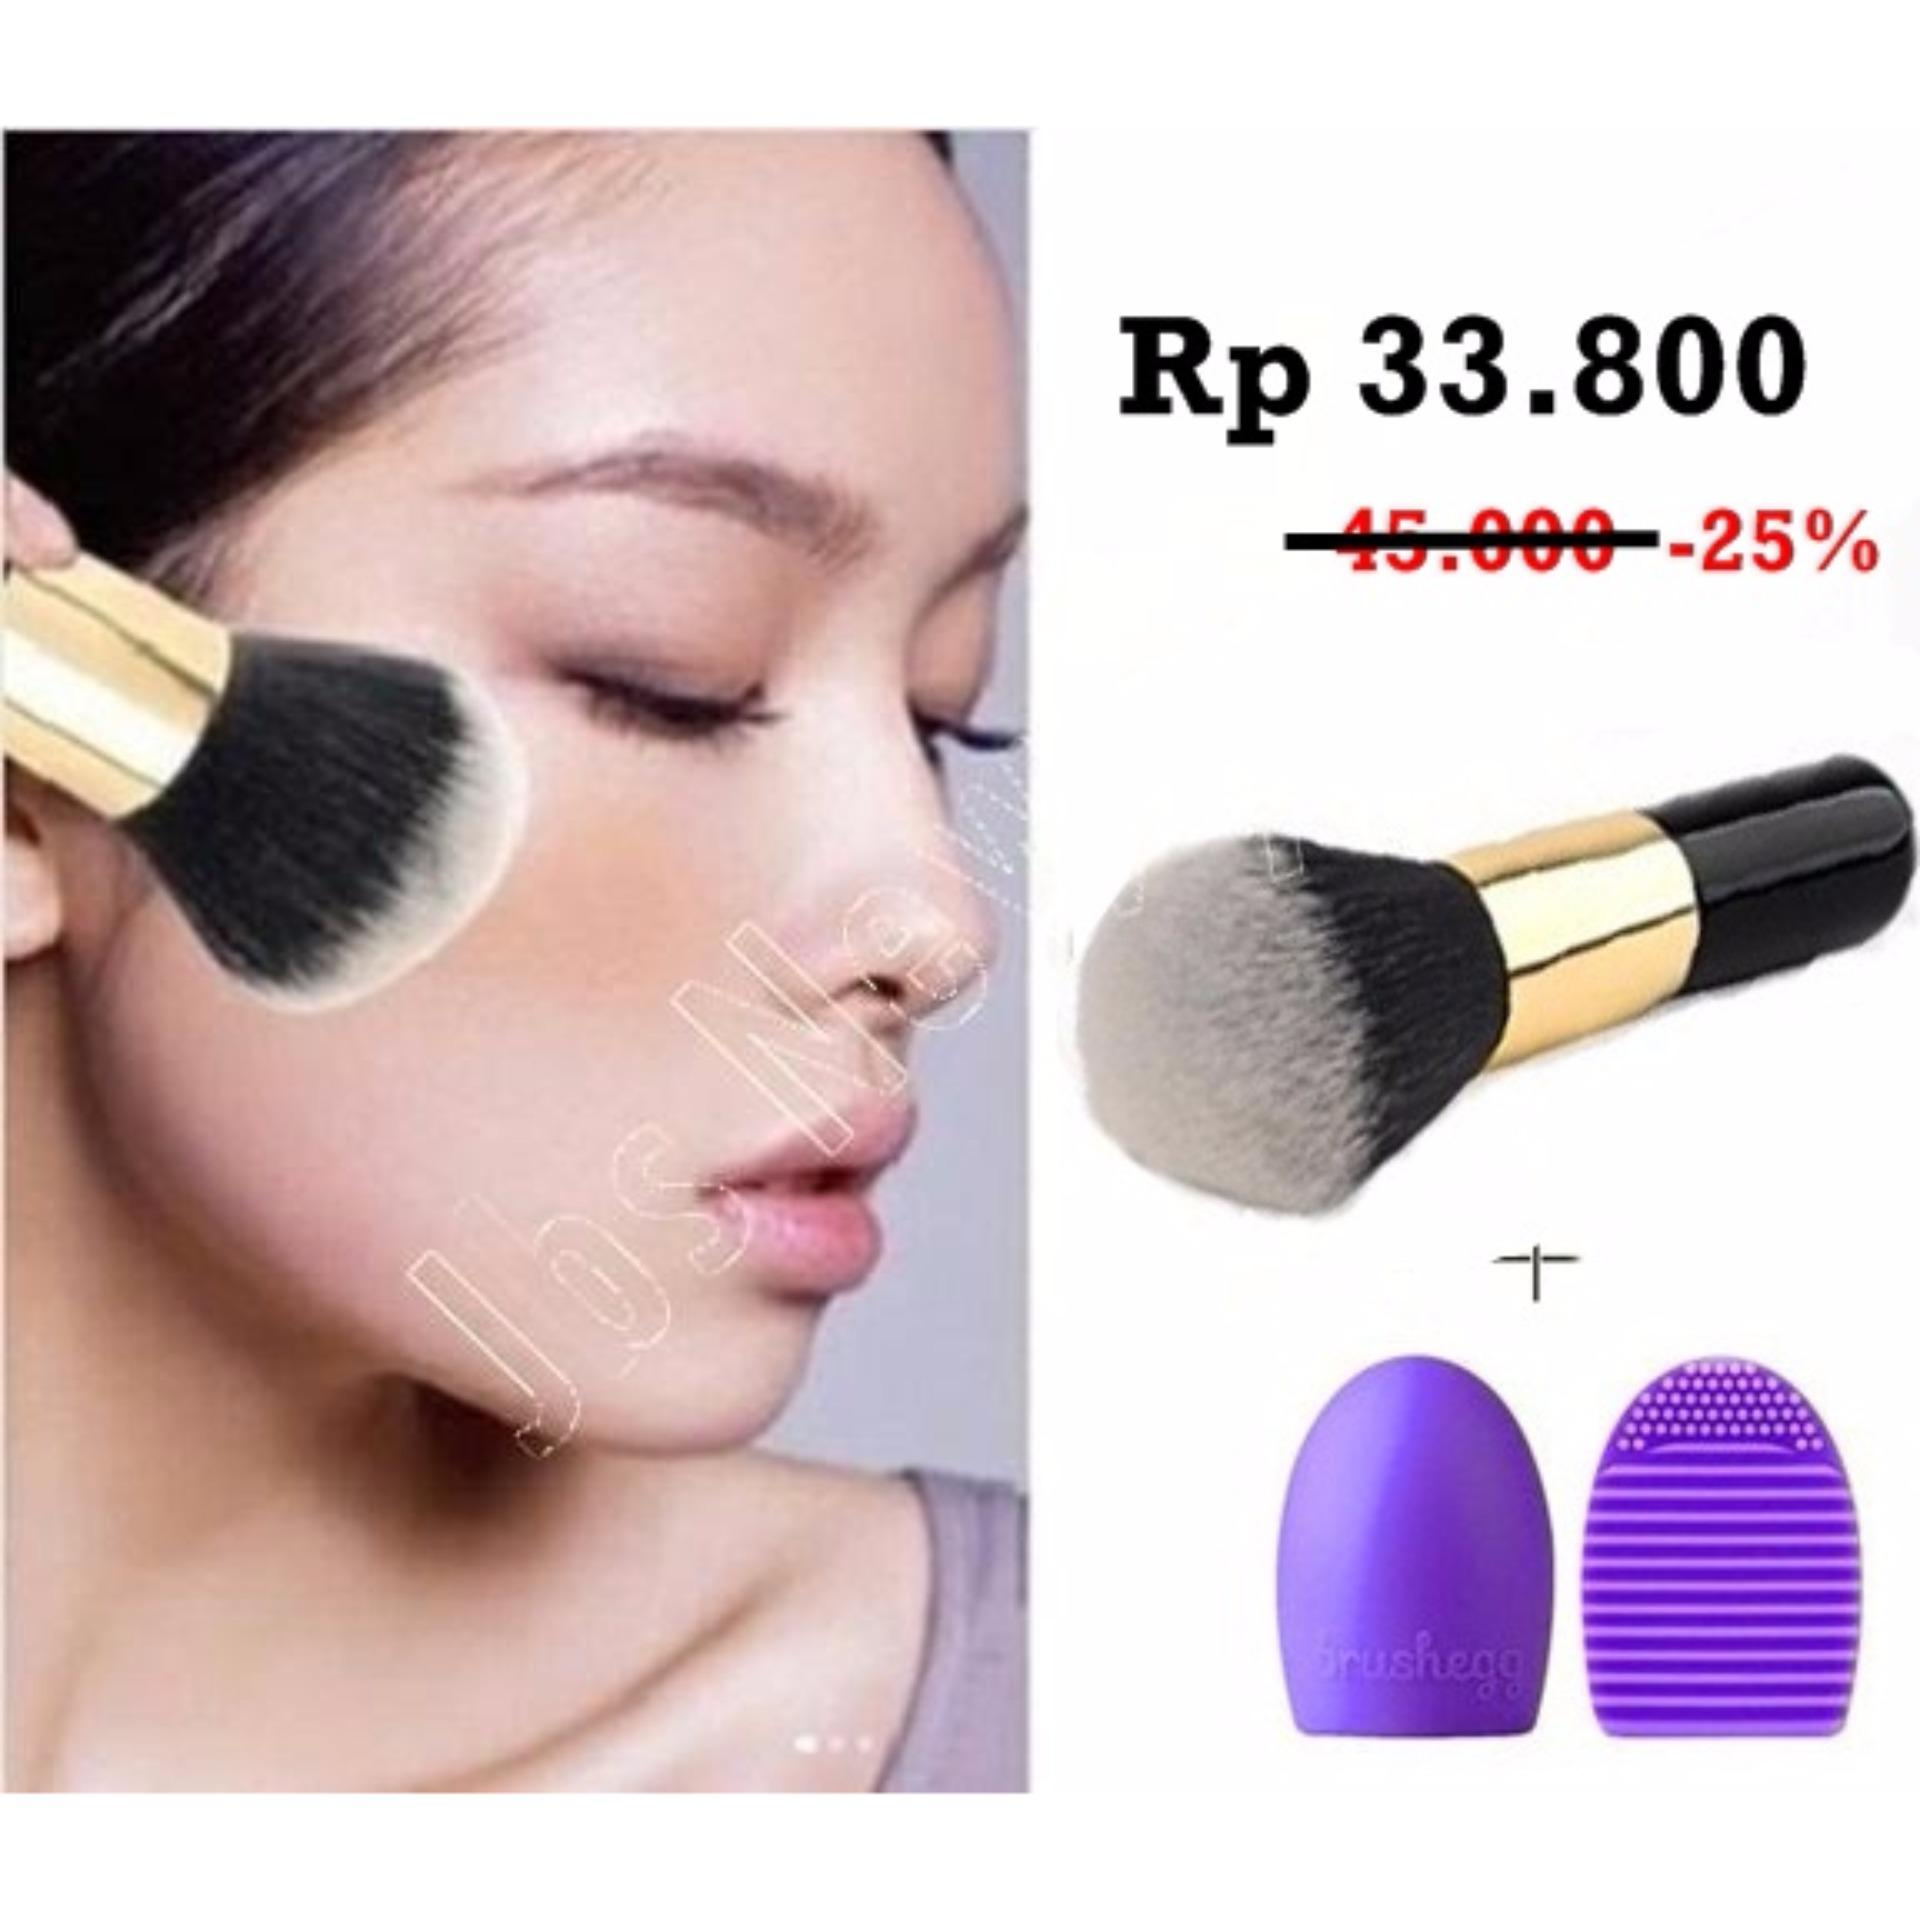 Cek Harga Baru Jbs New York Makeup Brush Little Foundation Set 12 Eyerush Gold K 046 Bundle Powder Chuby Egg Pembersih